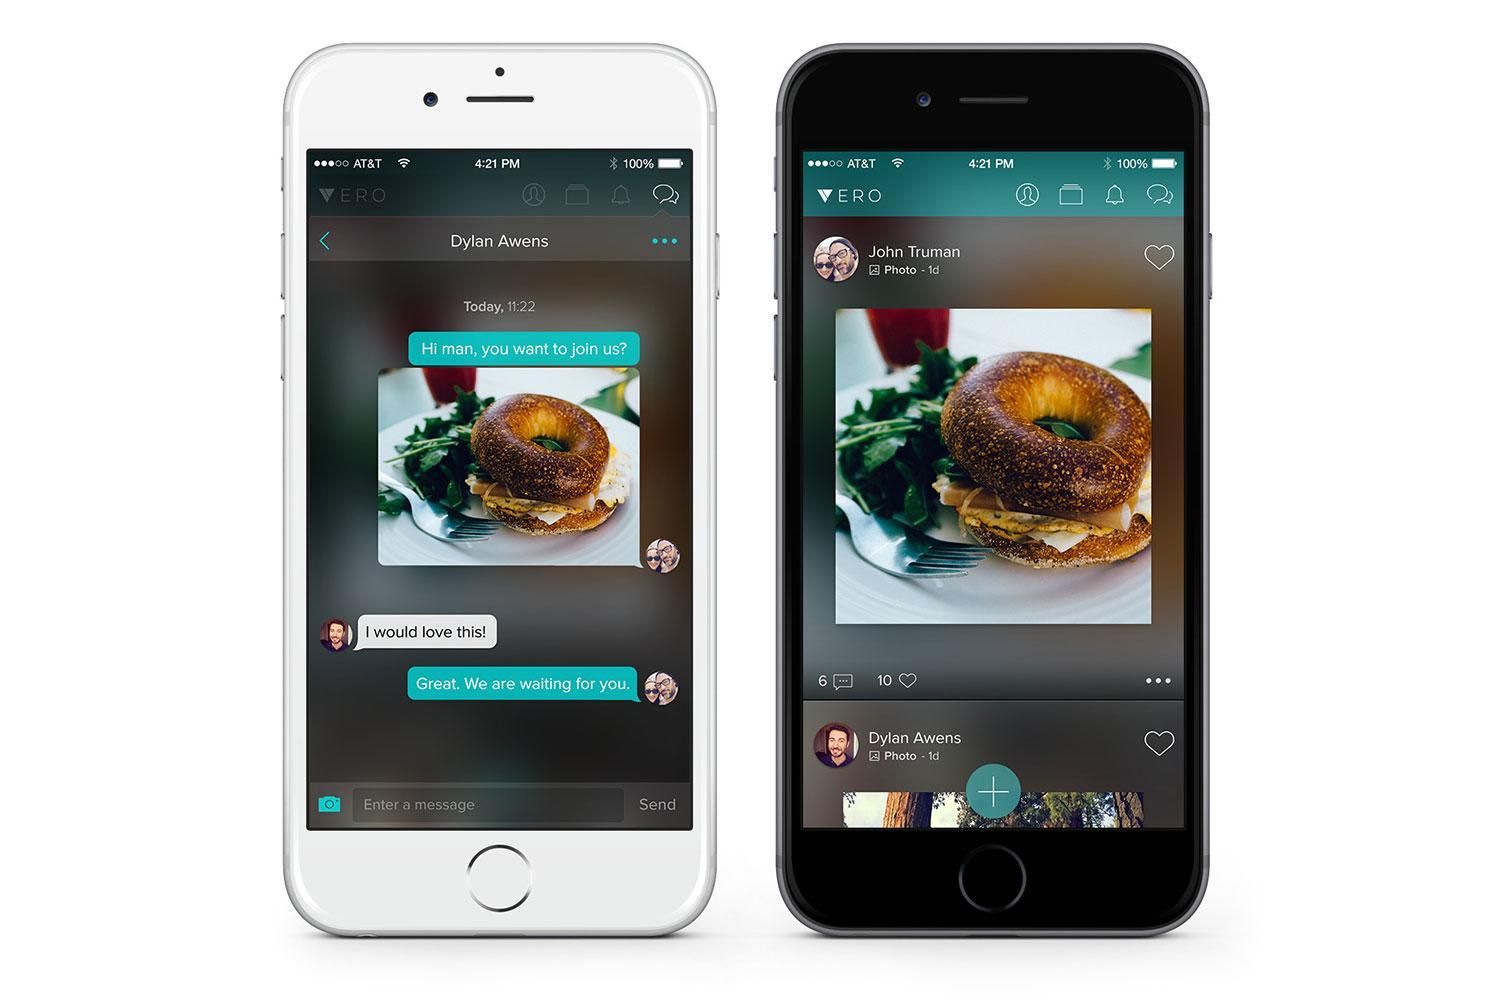 Will this new app put down Facebook, Instagram, Snapchat?